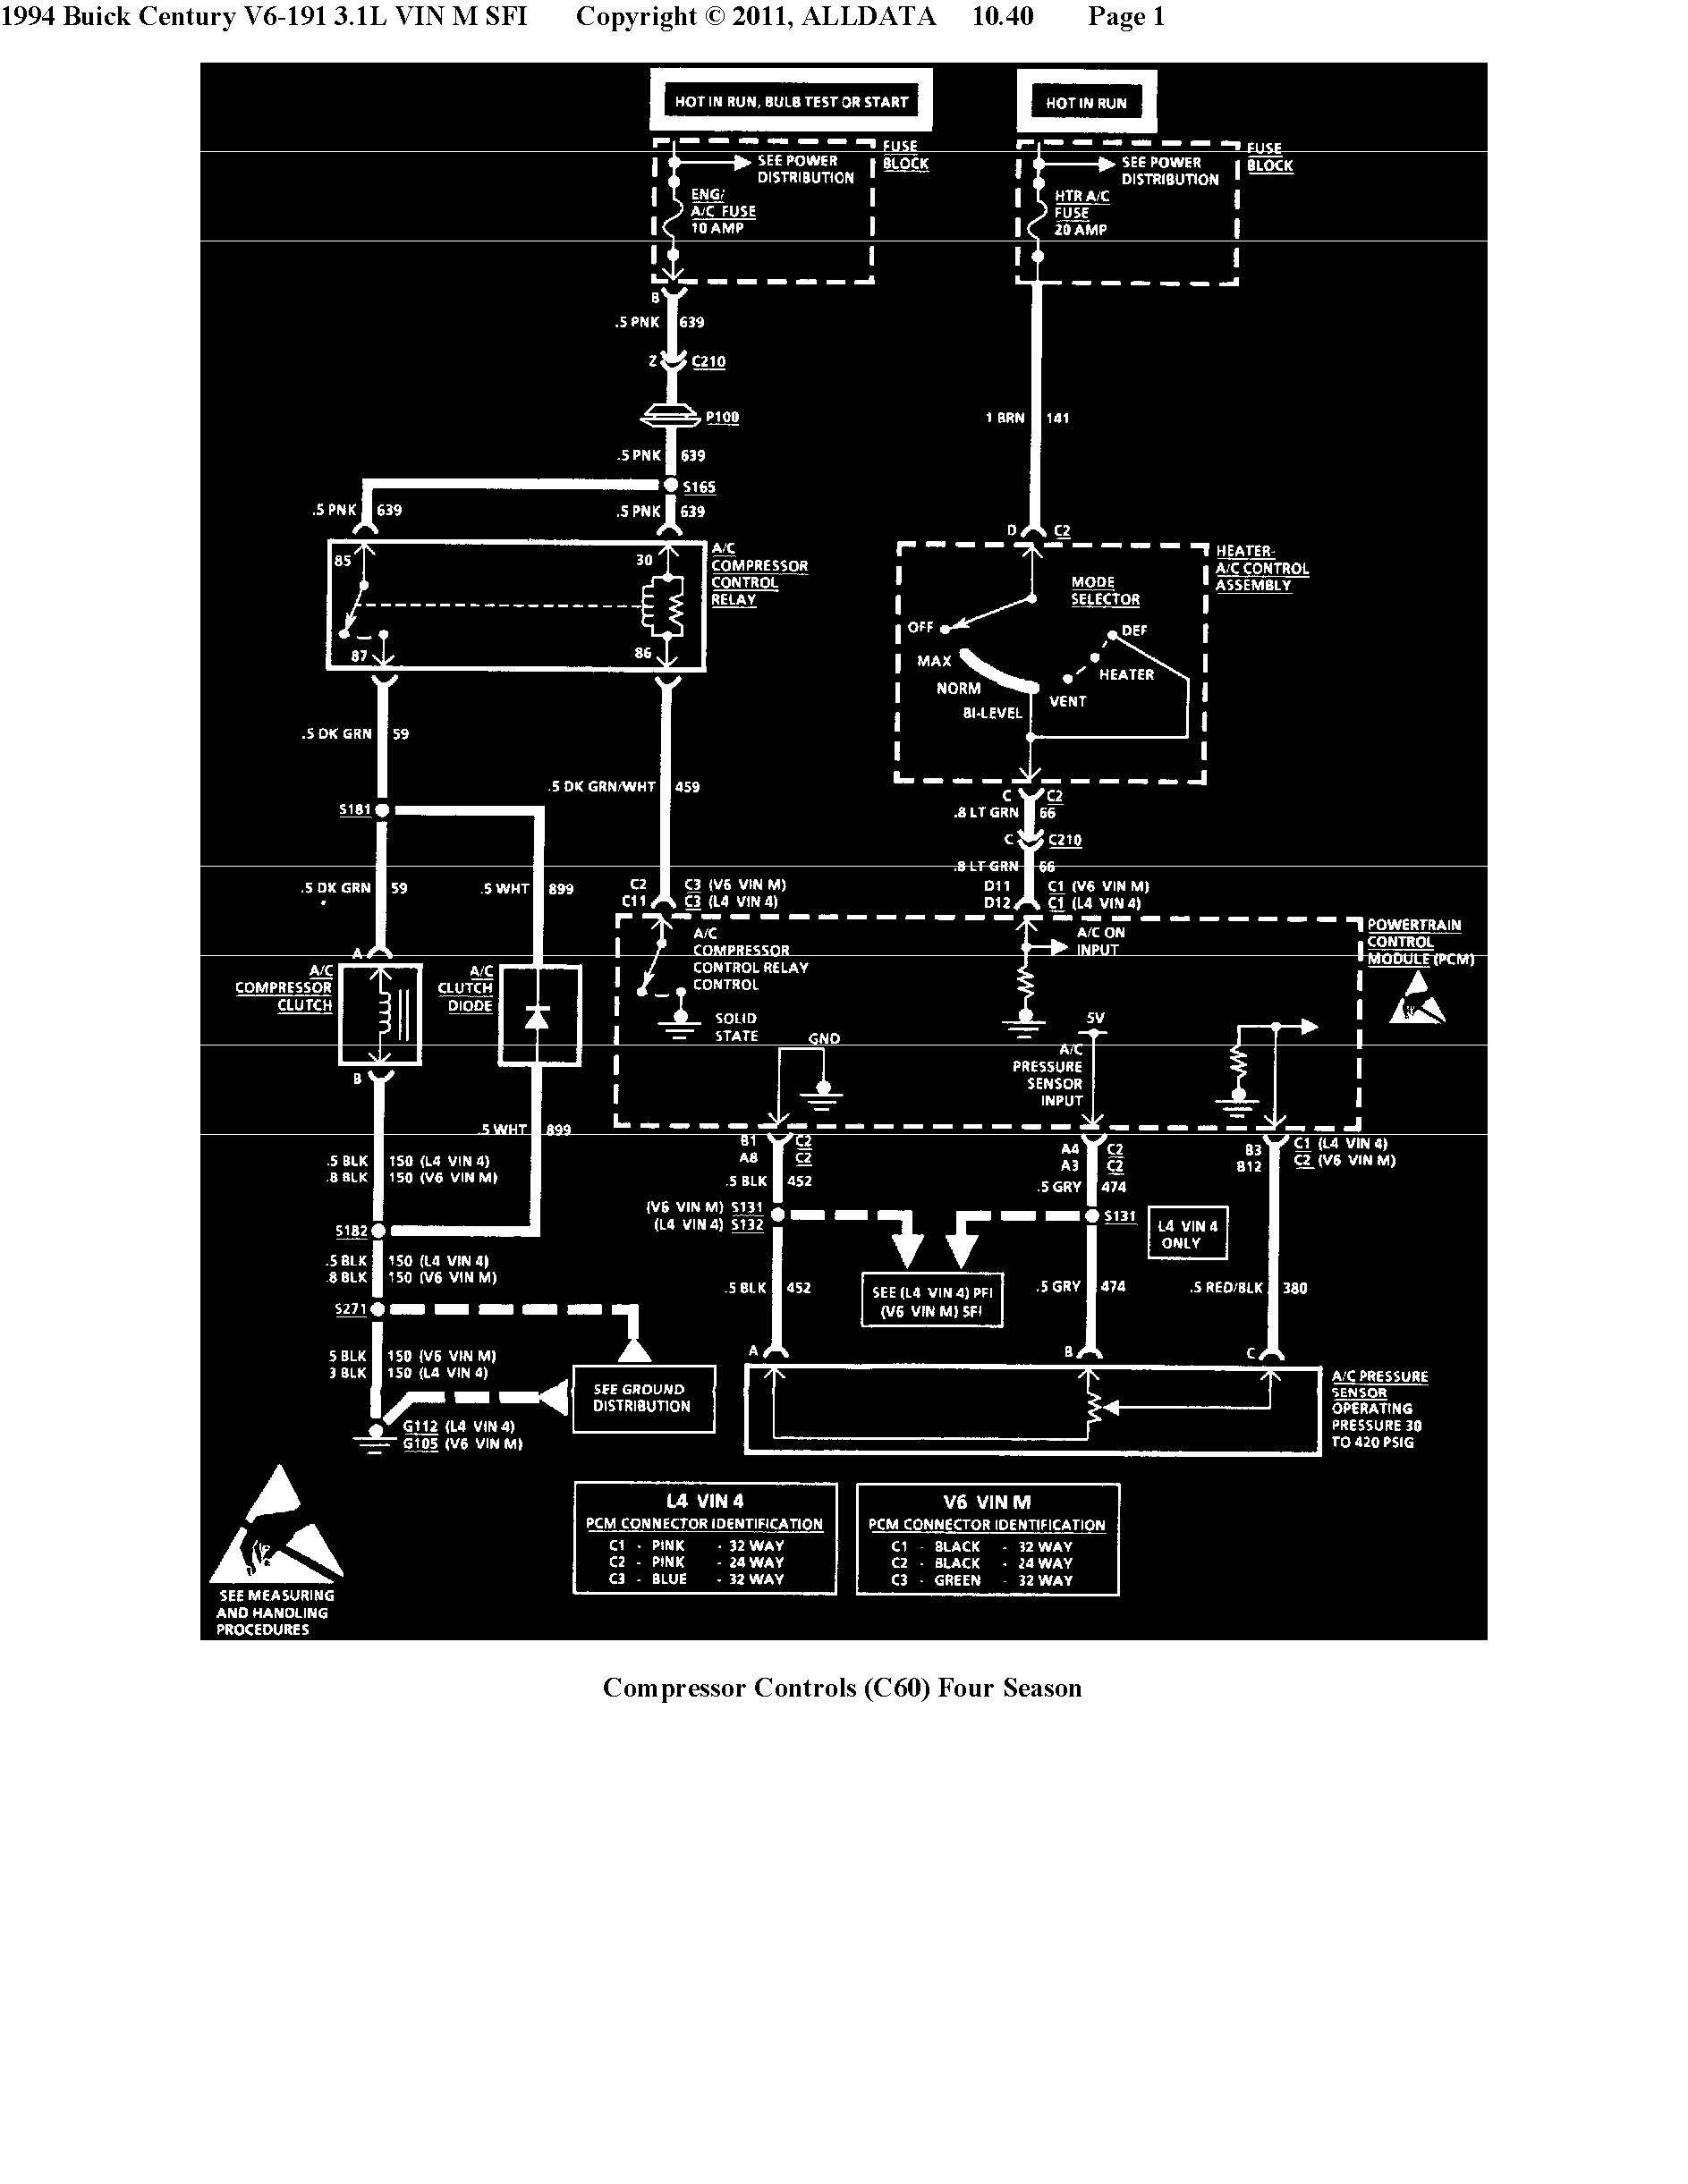 Vw Golf 2 0 Liter A C Compressor Clutch Wiring Diagram 2004 ... A C Compressor Clutch Diagram Schematic on mr buddy heater parts diagram, a c orifice tube diagram, 1986 ford f-150 engine diagram, a c condenser diagram, vehicle a c system diagram, 1993 toyota pickup wiring diagram, 93 302 engine diagram, 2002 ford escape engine diagram, ford 4.2 engine diagram, a c compressor parts diagram, a c relay diagram, 1993 nissan pickup wiring diagram, a c pressure switch diagram, auto a c compressor diagram, 1997 ford f-150 engine diagram, 1995 corvette ac line diagram, 2001 ford f-150 engine diagram, car compressor diagram, f150 engine diagram, master heater parts diagram,